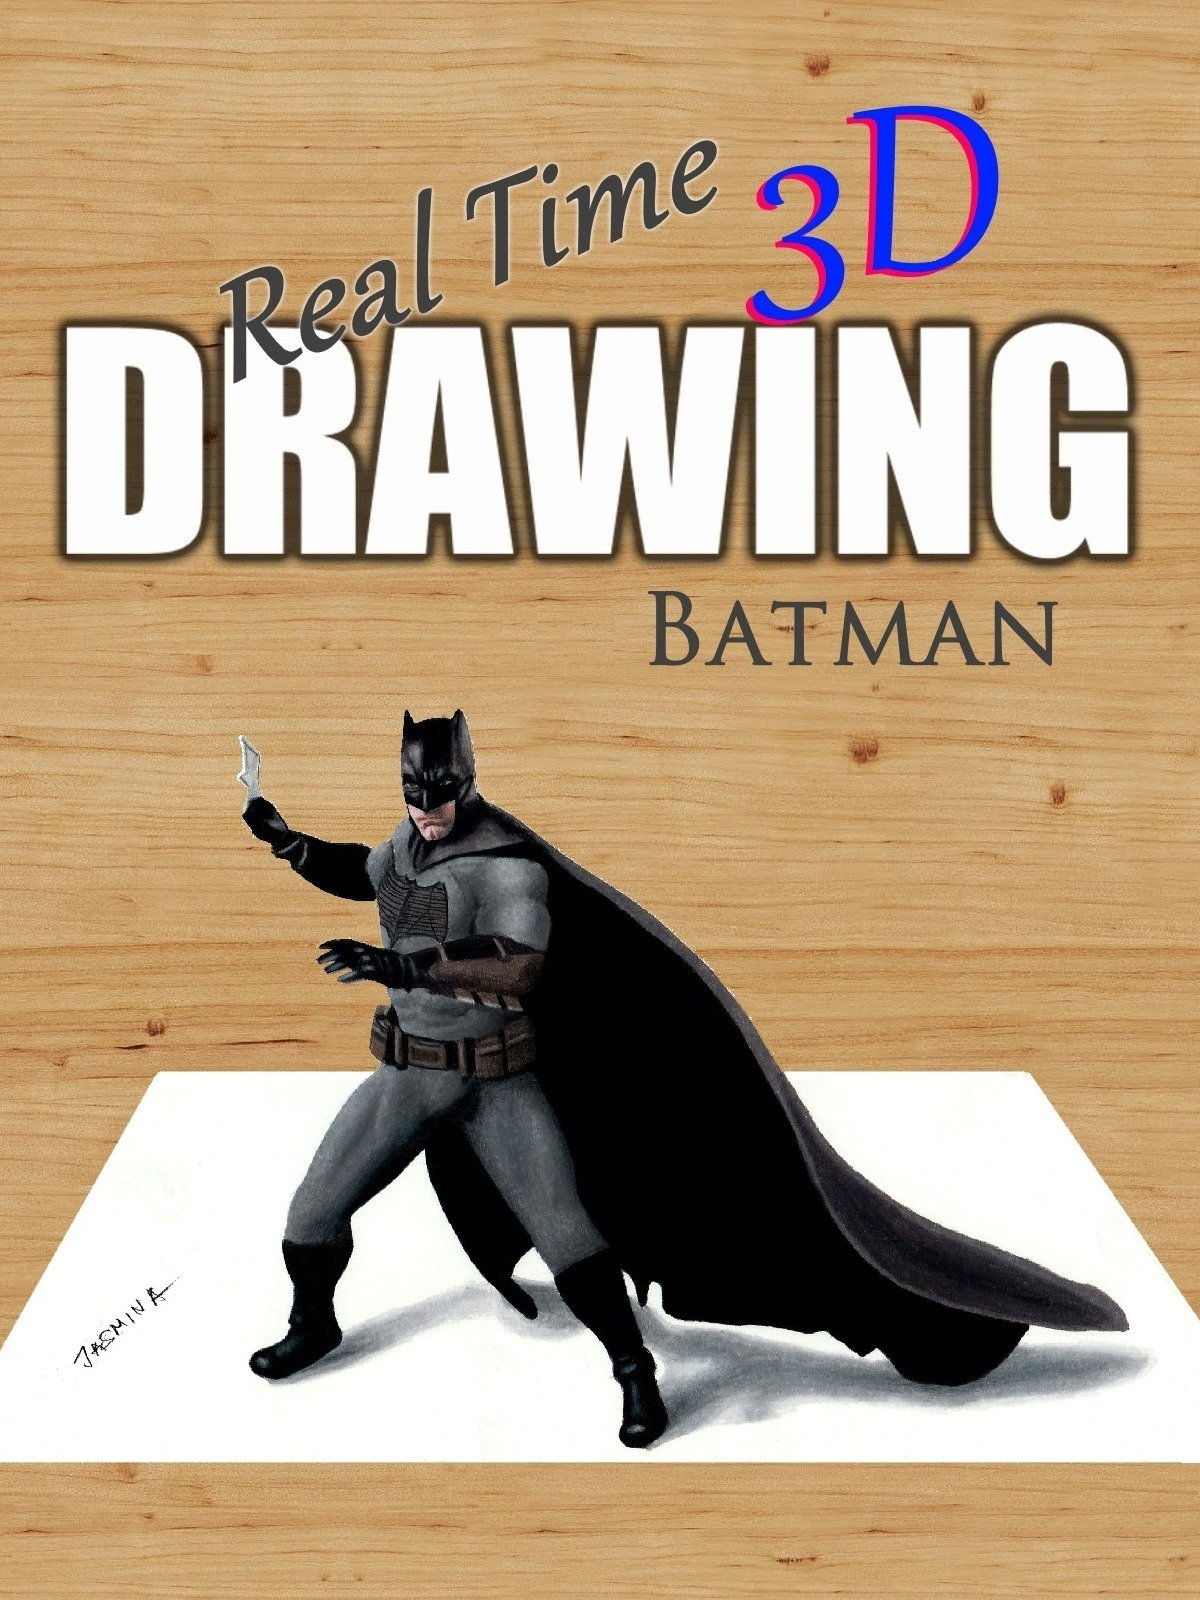 Real Time 3D Drawing Batman